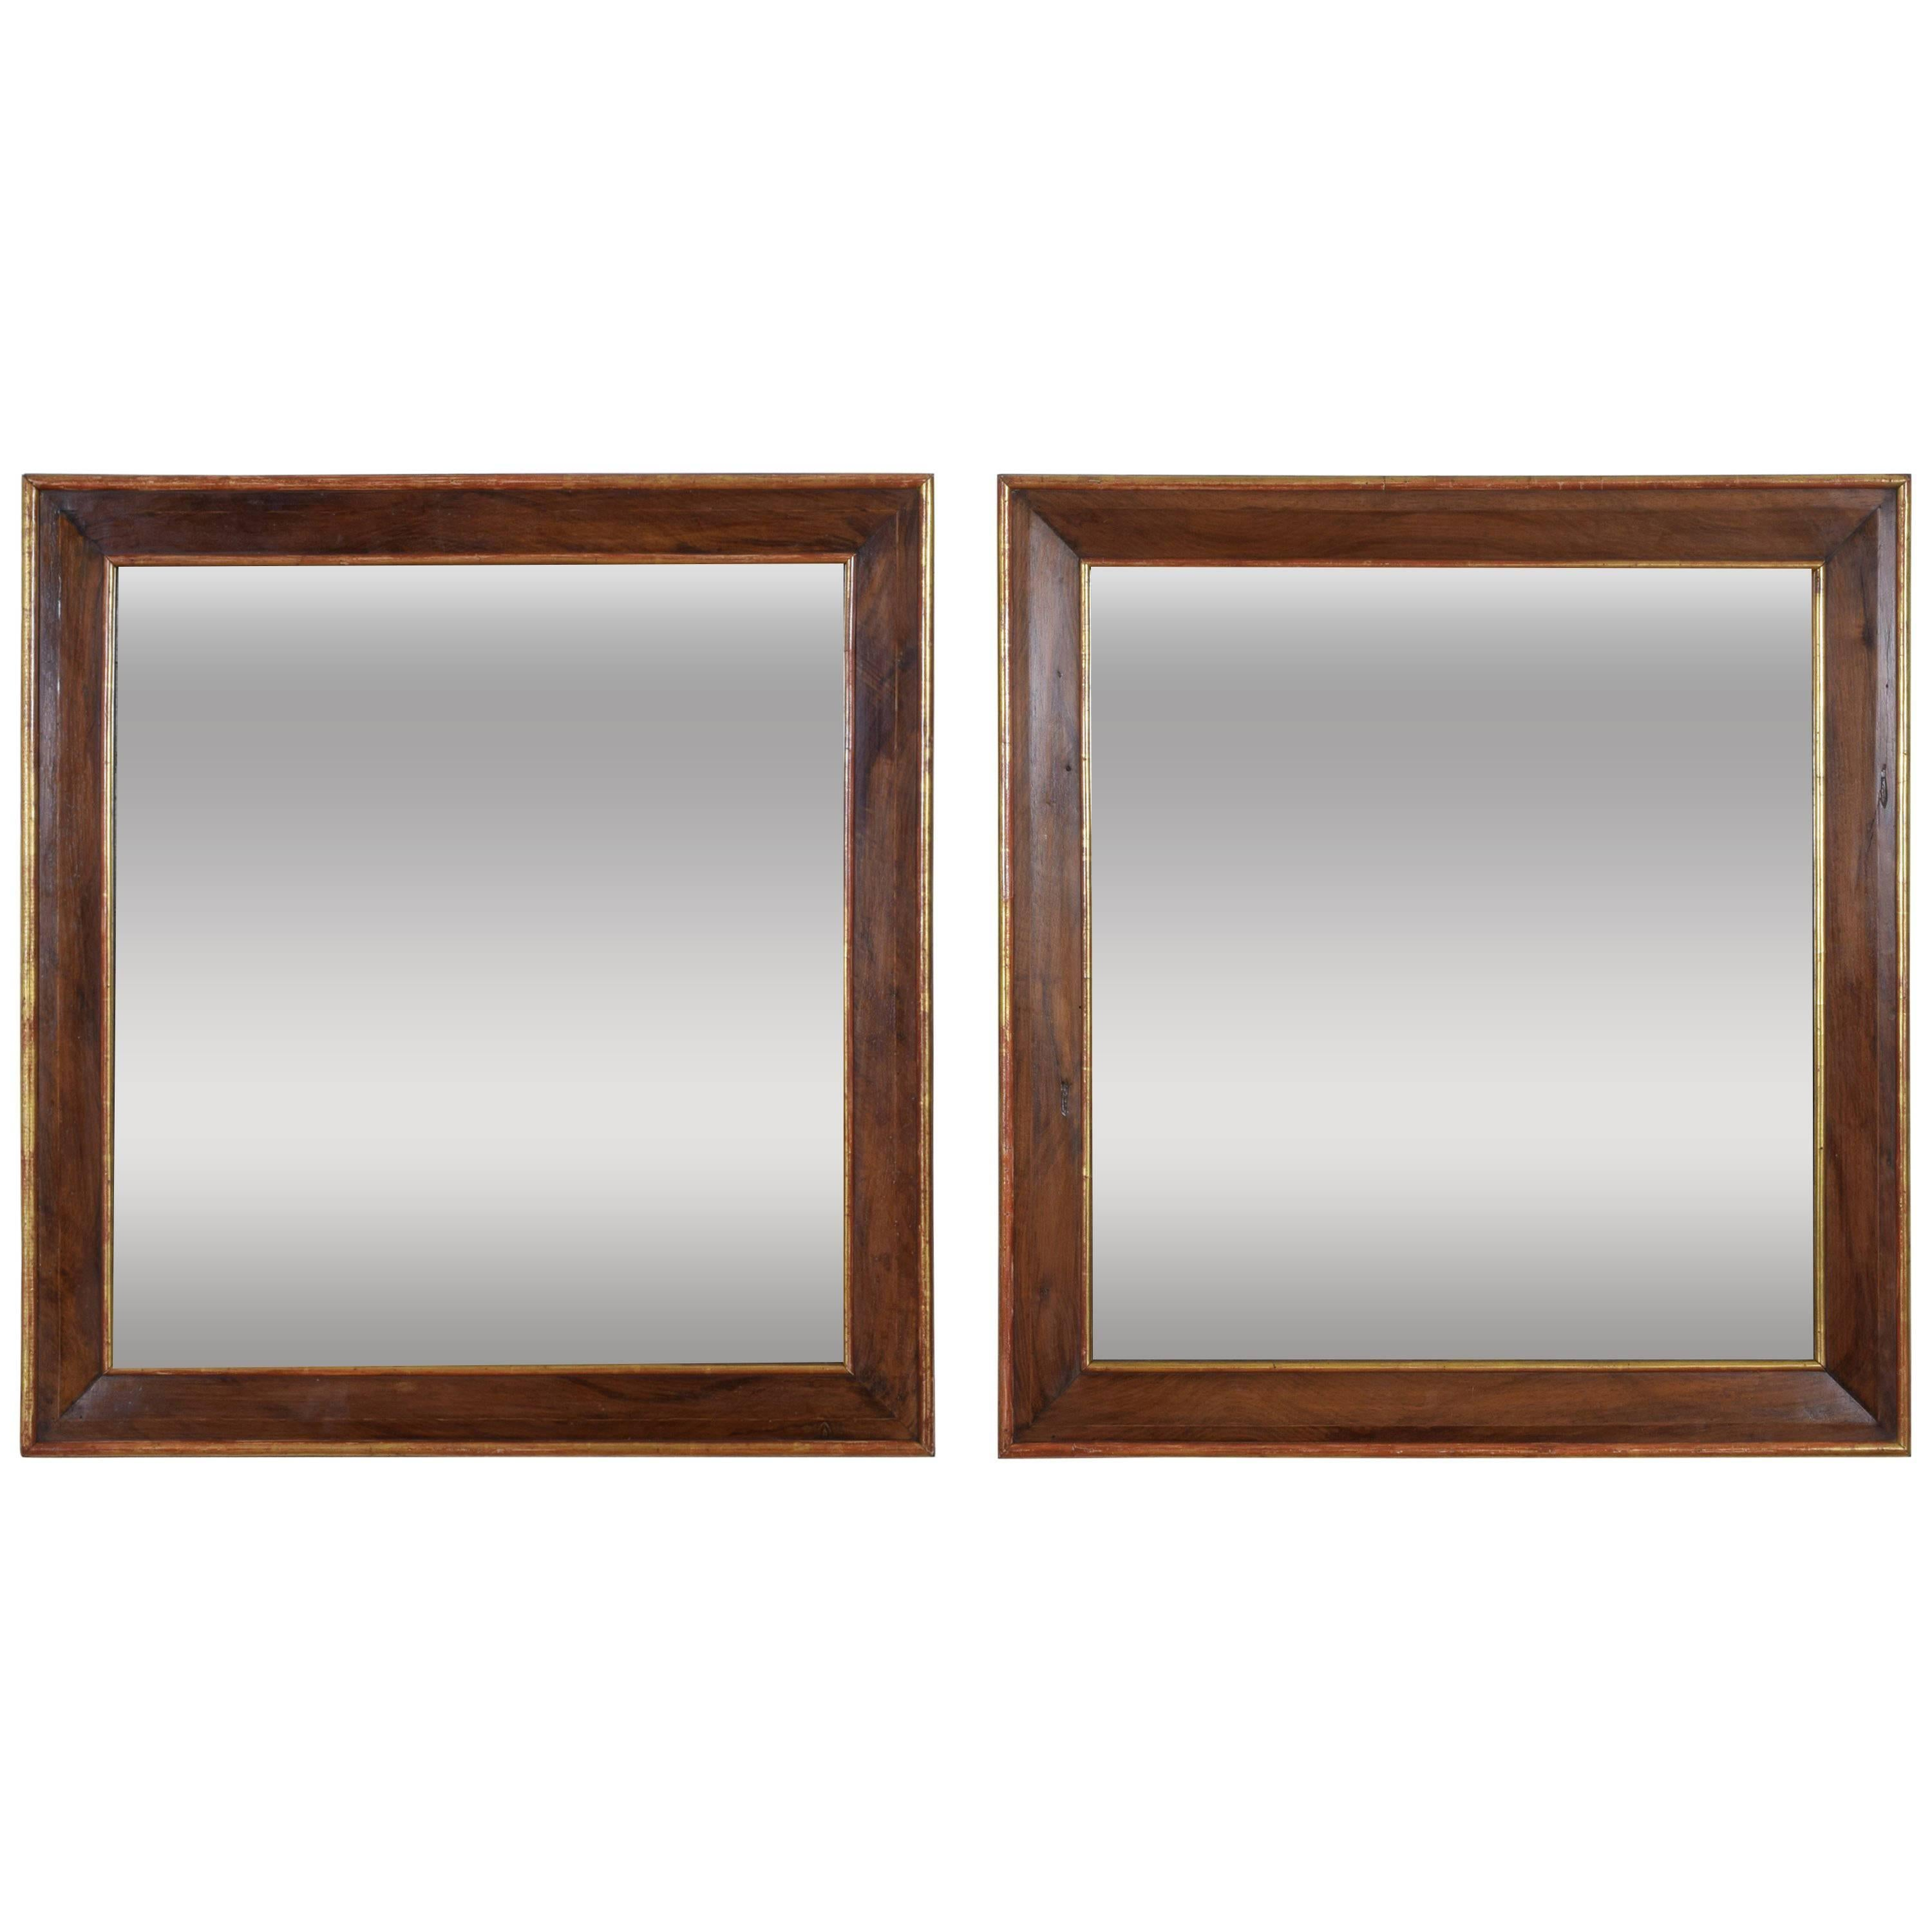 Captivating Pair Spanish Neoclassic Walnut And Giltwood Wall Mirrors, 19th Century